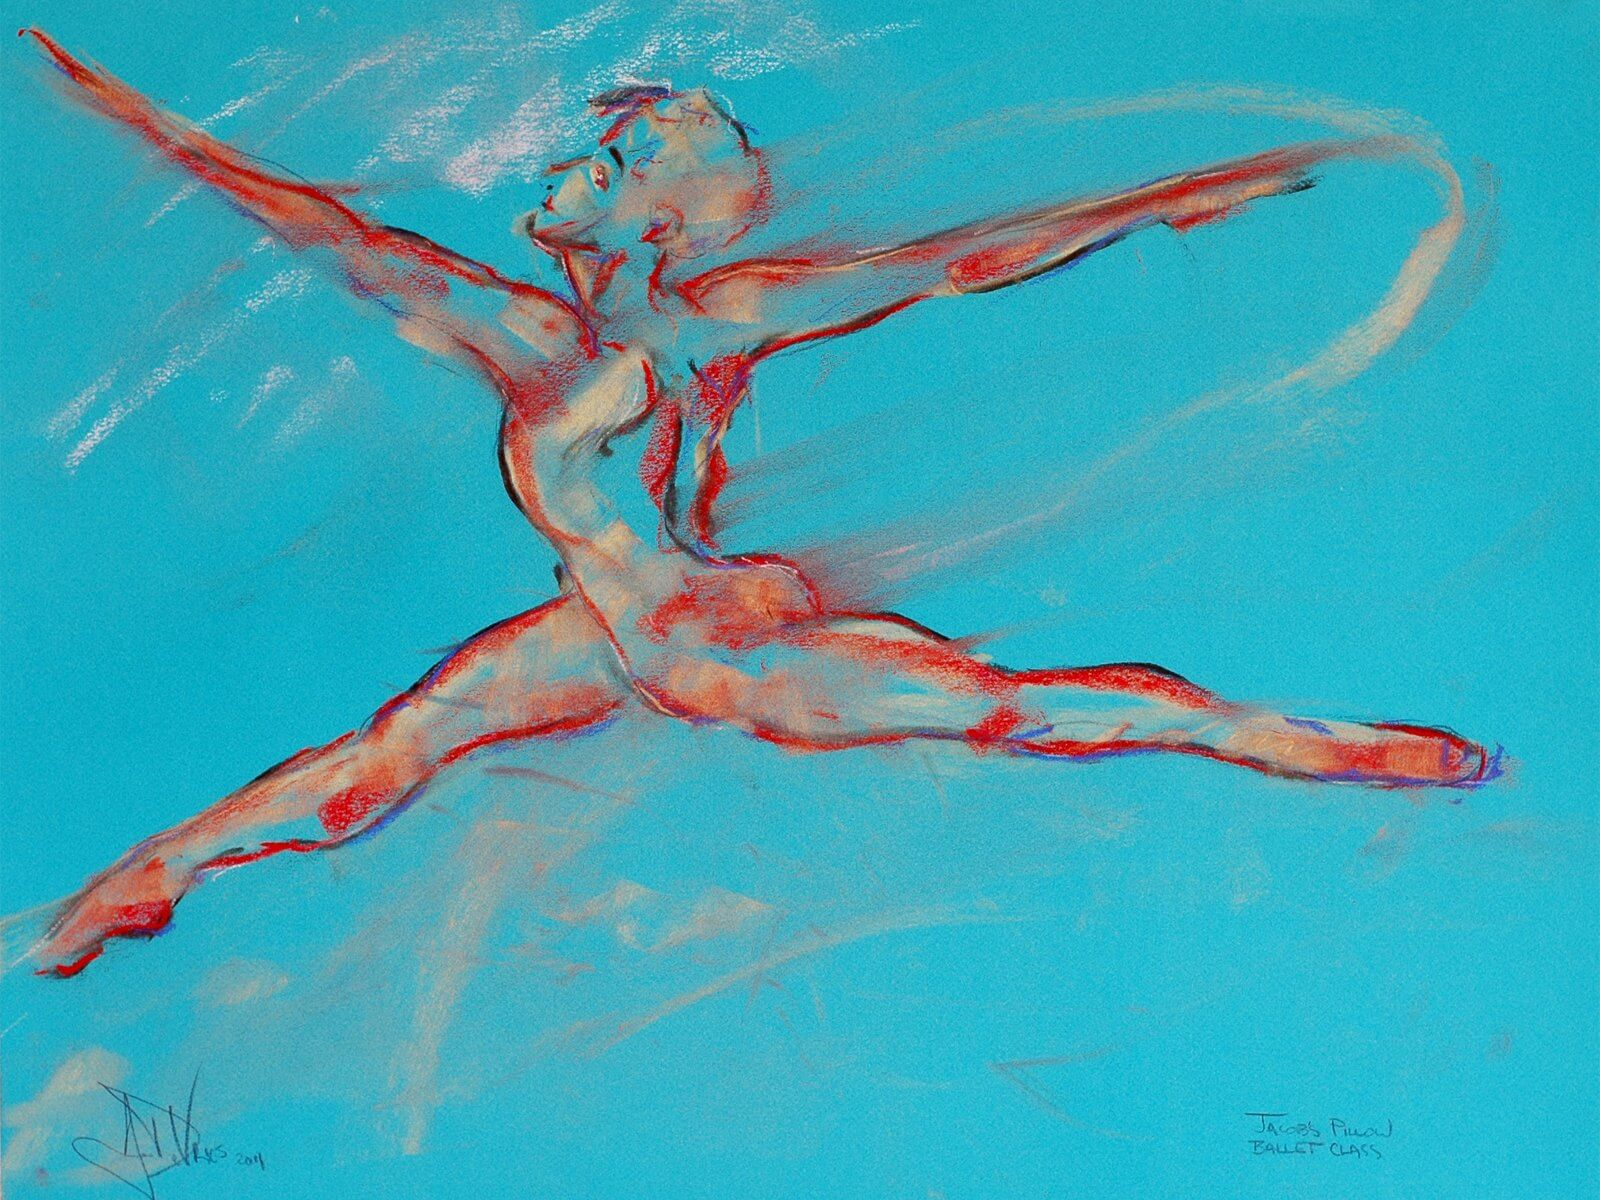 Jacob's Pillow, ballet class is an original pastel painting by Andrew DeVries, done from a sketch. It is on acid free paper. Copyright 2011